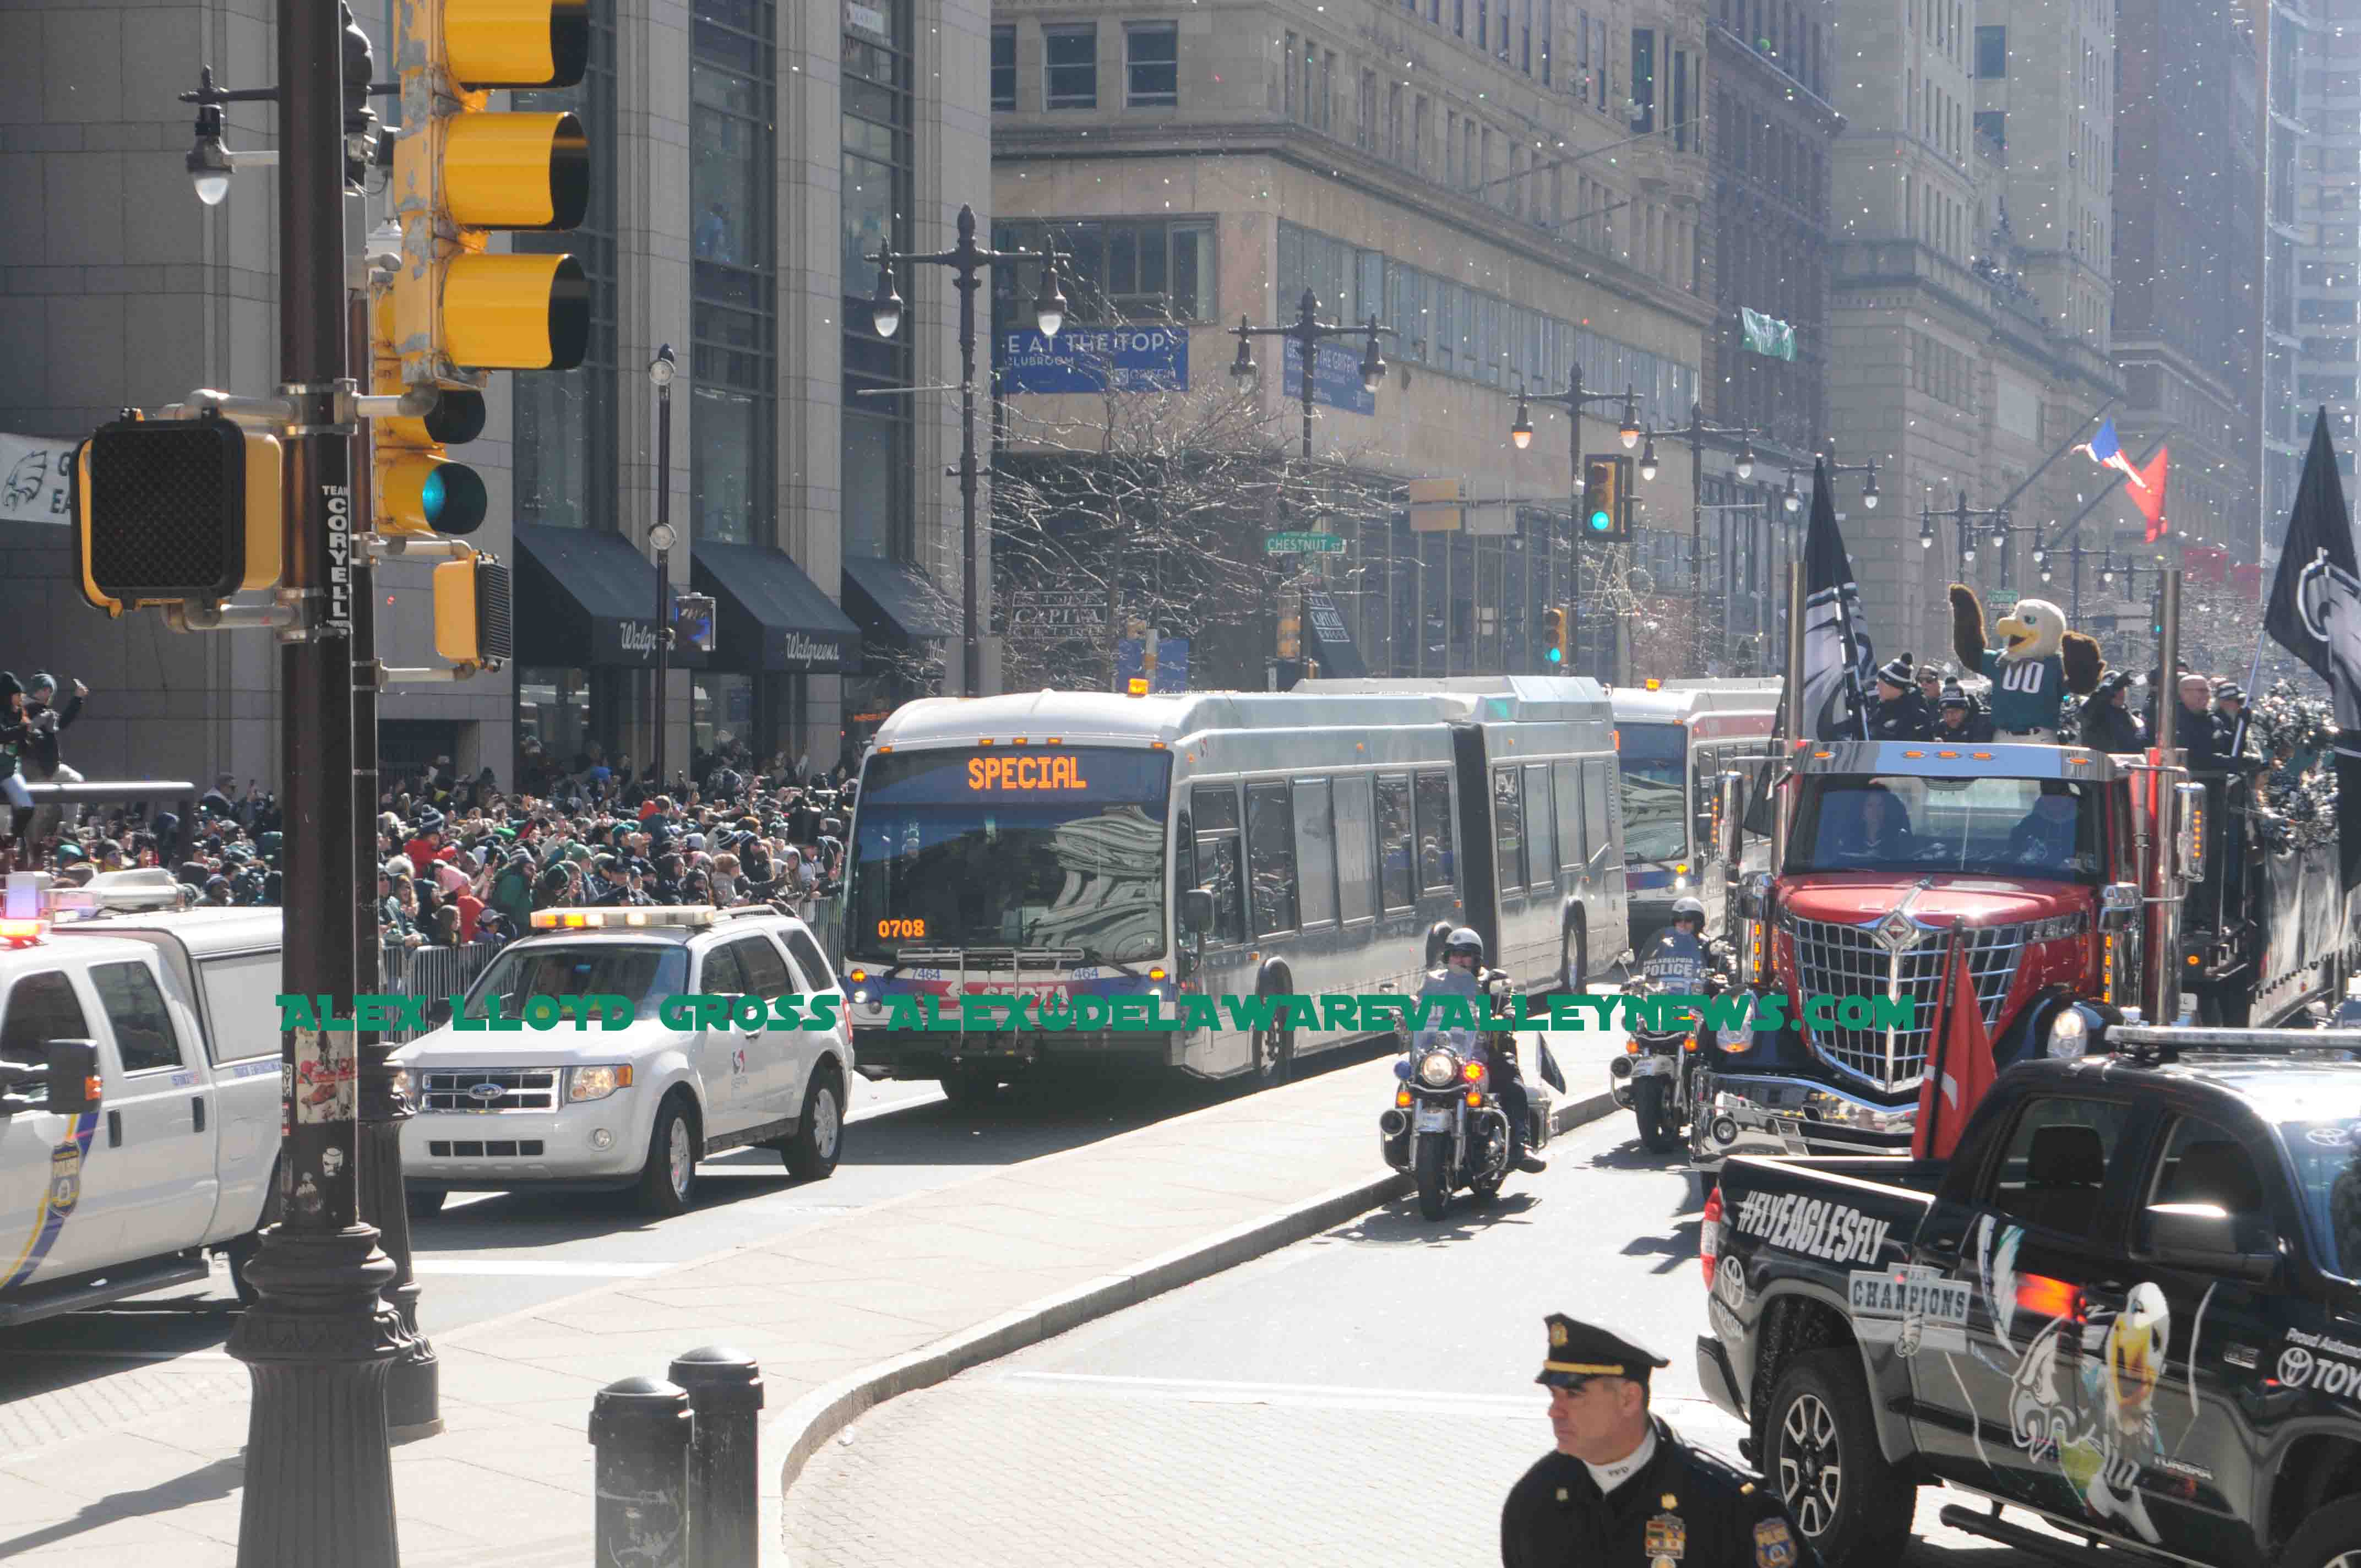 septa buses messed up parade experience for many delaware valley news